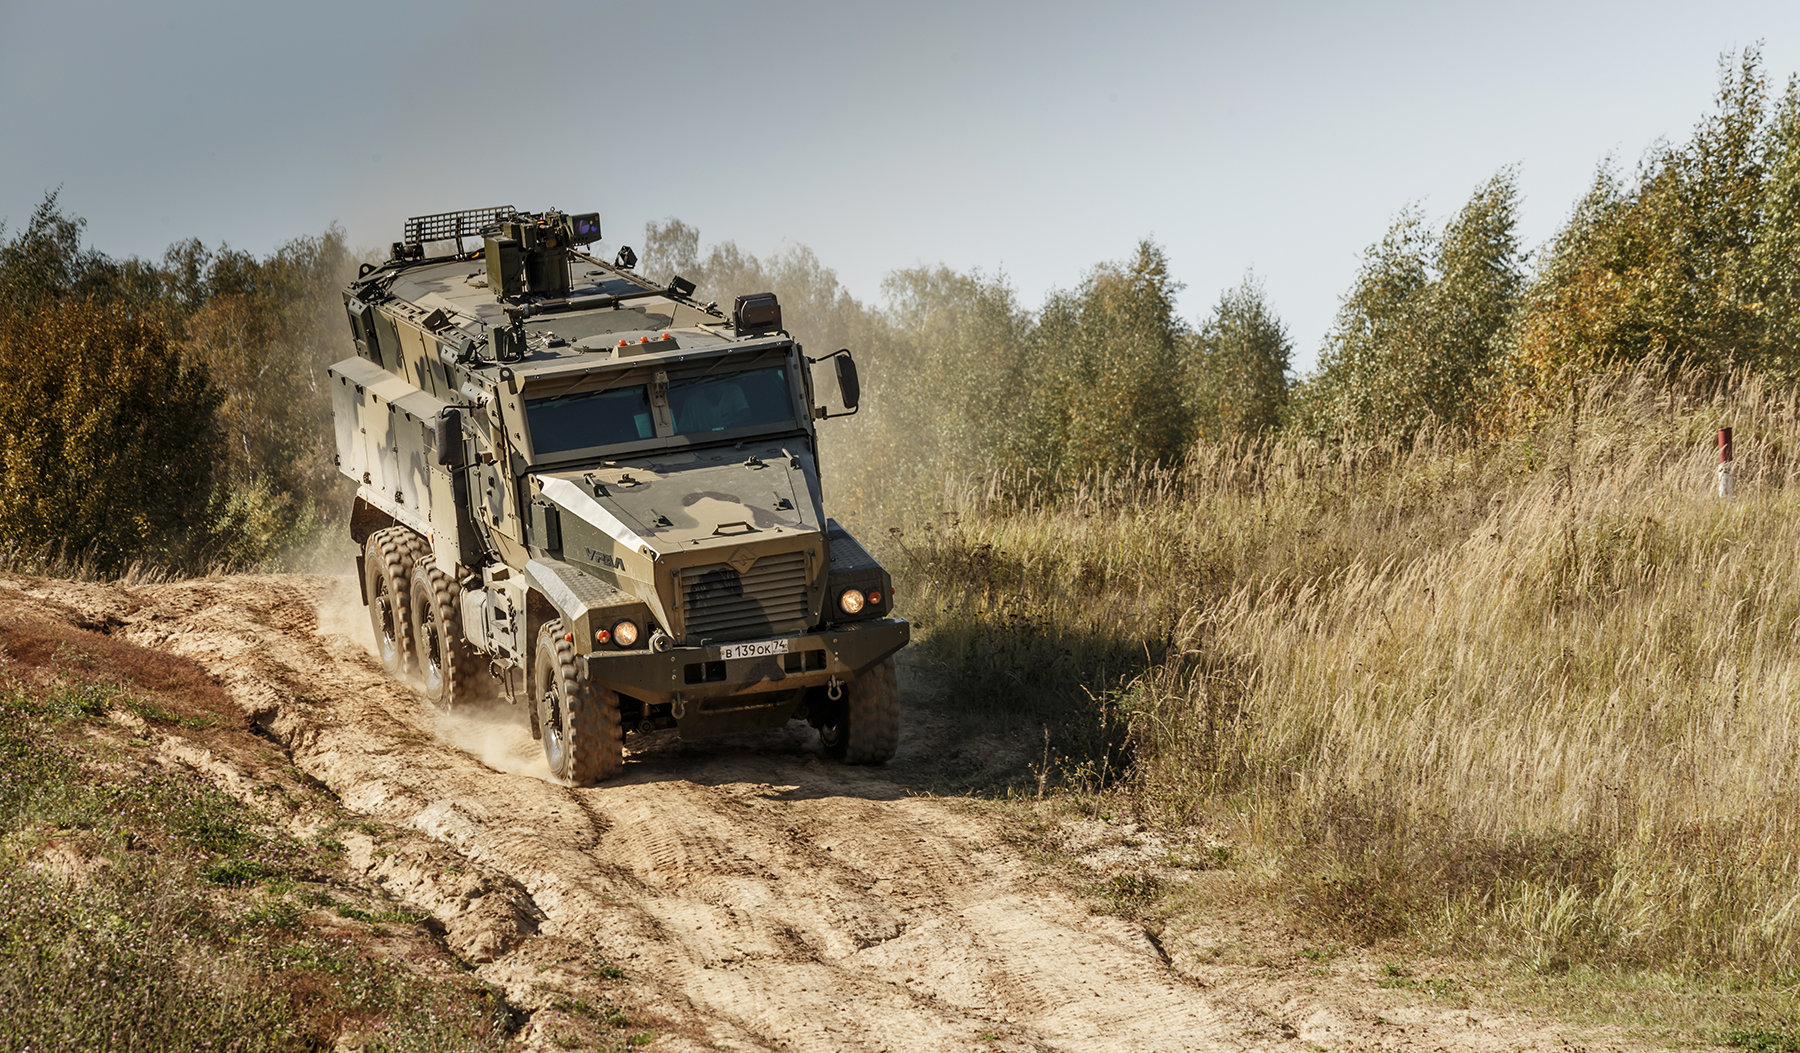 Typhoon MRAP family vehicles - Page 6 SBp6g